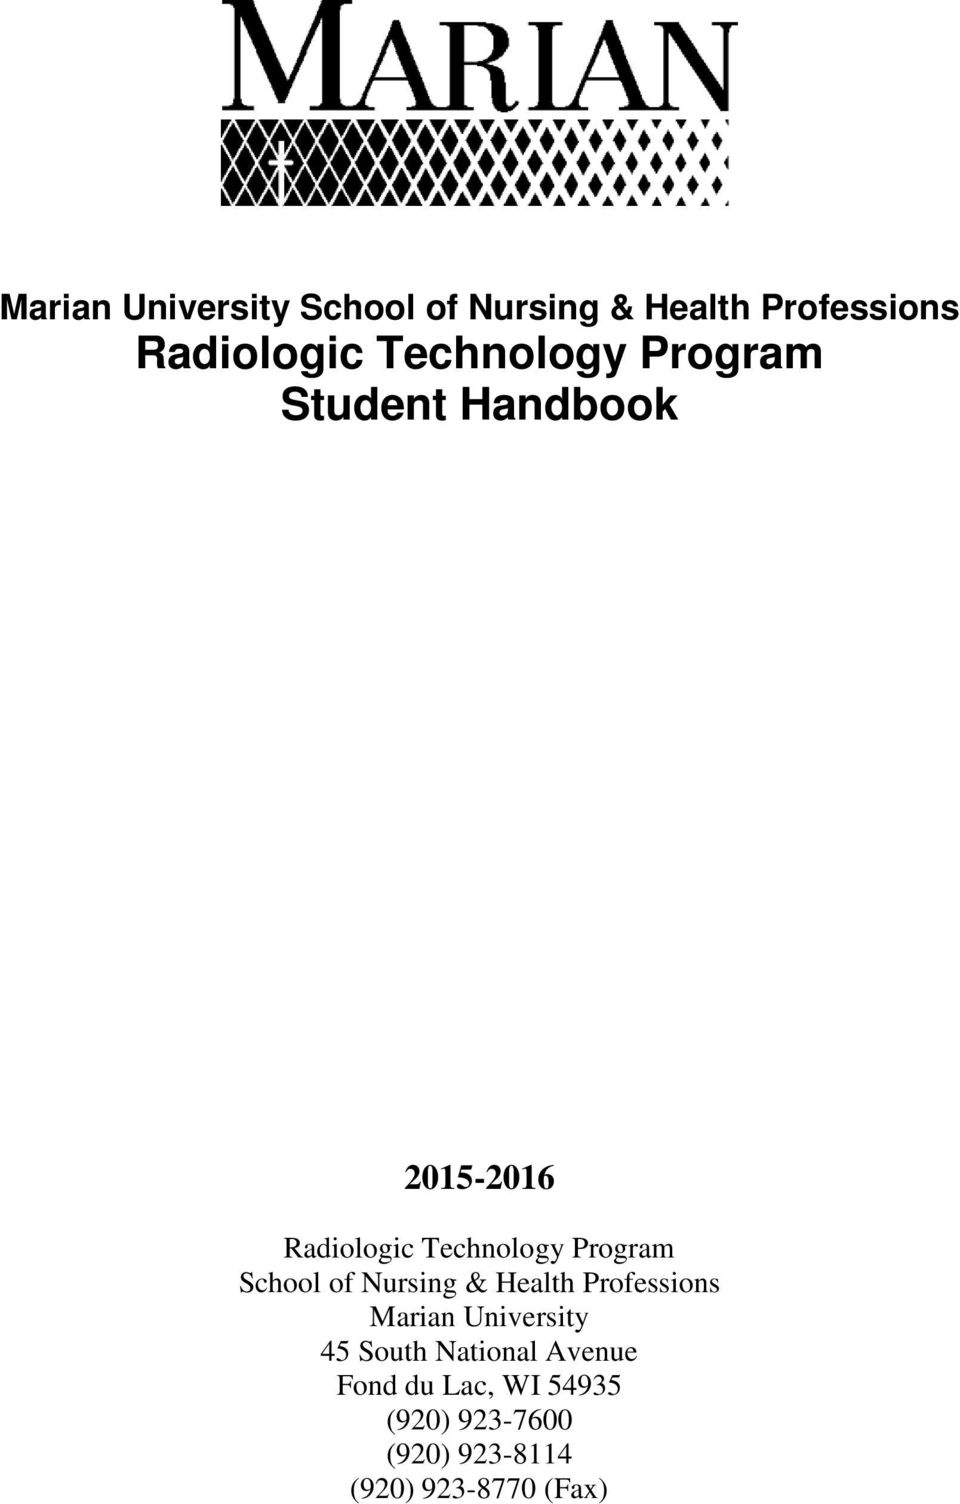 Program School of Nursing & Health Professions Marian University 45 South